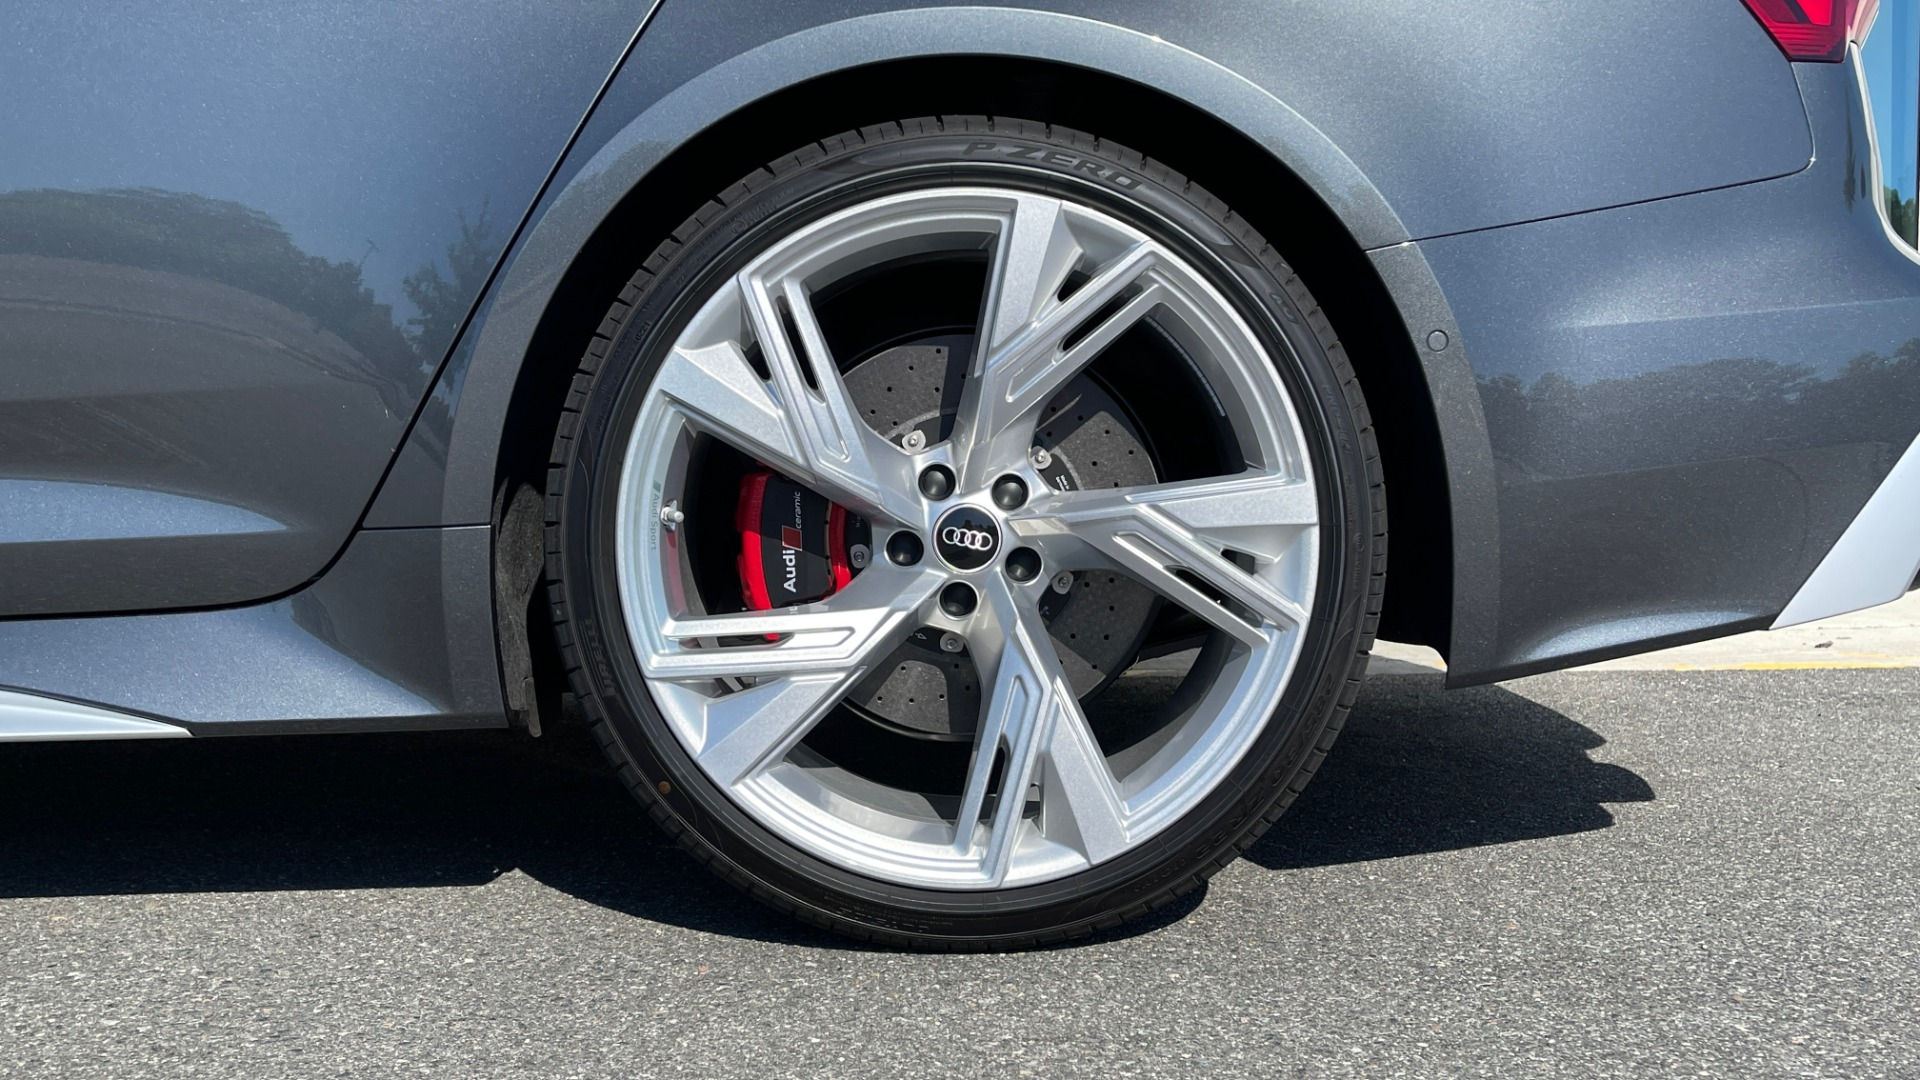 Used 2021 Audi RS 6 AVANT WAGON / EXEC PKG / CARBON OPTIC / B&O SND / DRVR ASST / SPRT EXH for sale Sold at Formula Imports in Charlotte NC 28227 67